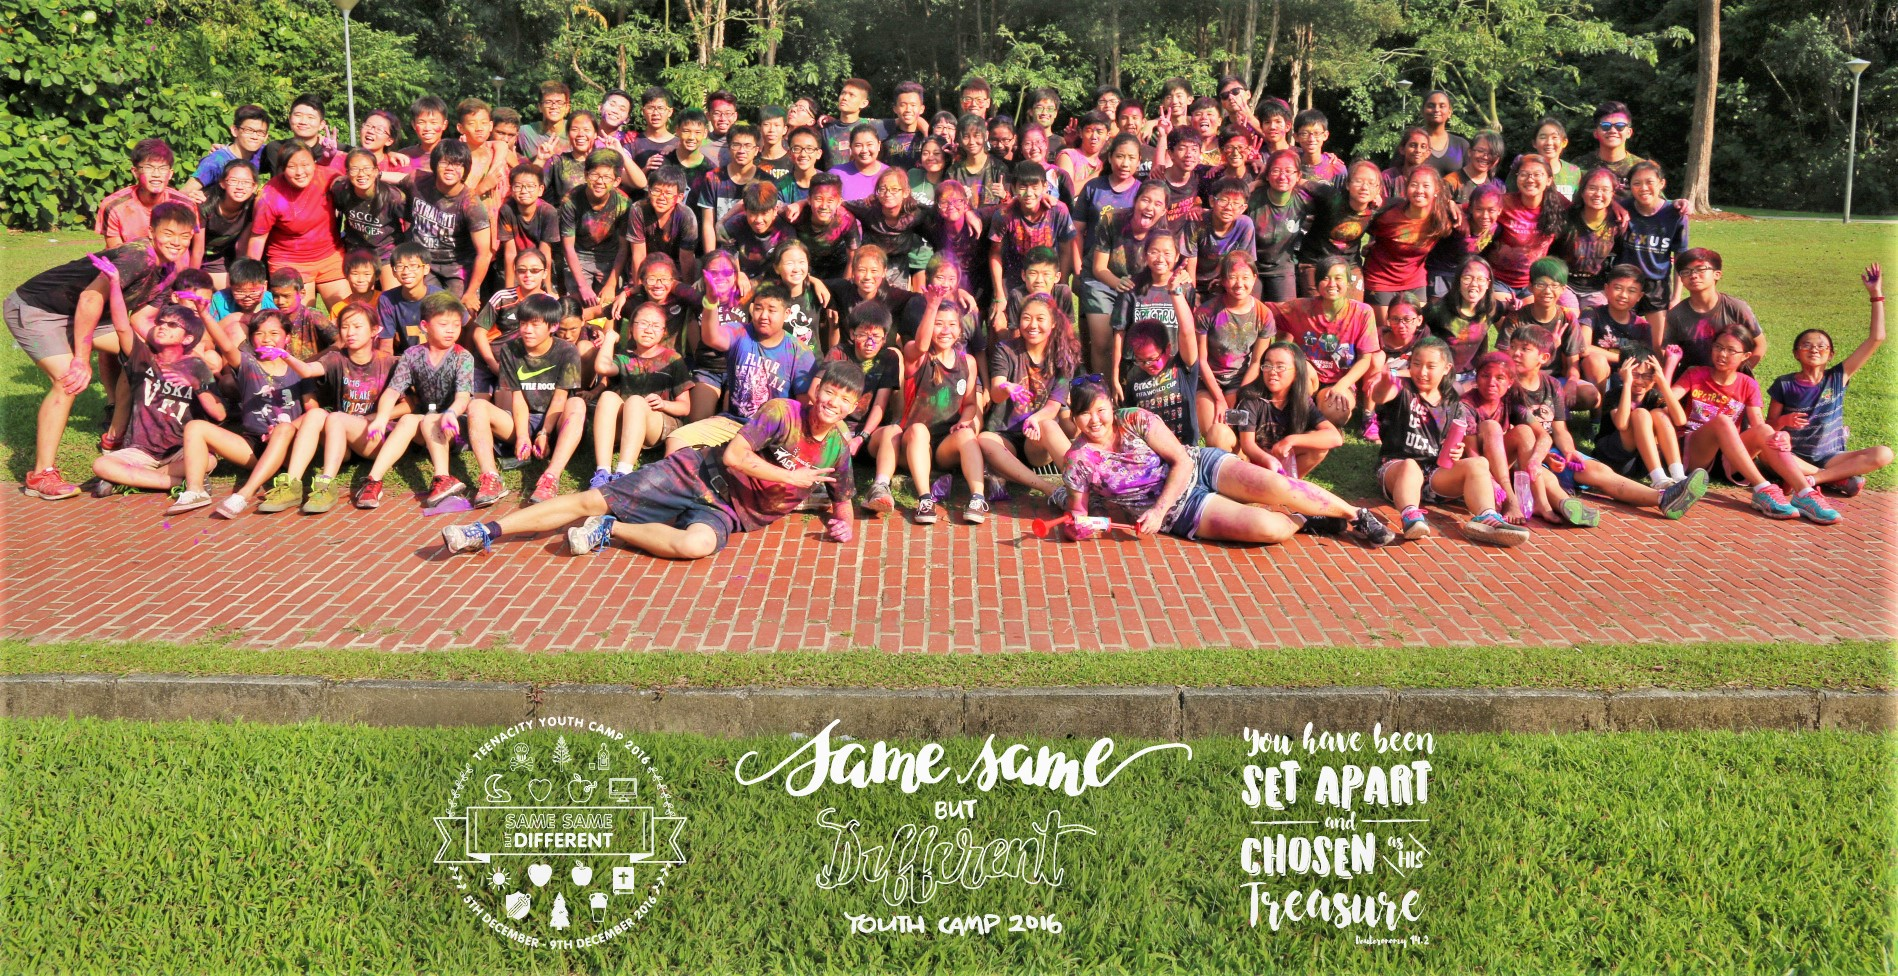 1. Youth Camp 2016